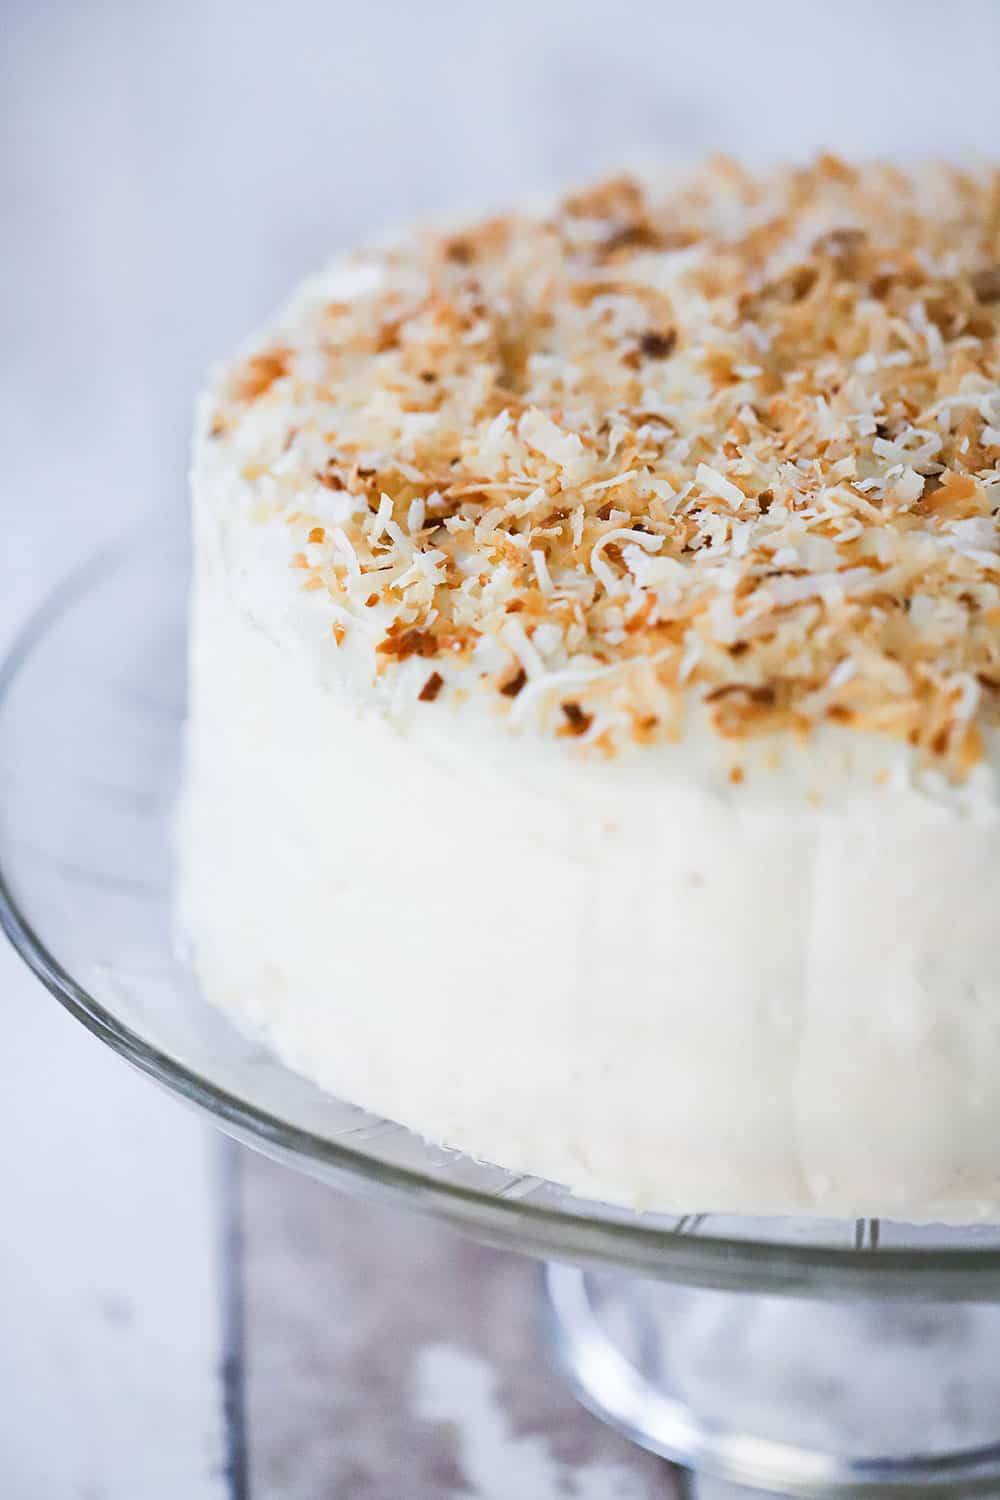 A coconut cream cake on a cake stand with toasted coconut flakes all over the top of the cake.